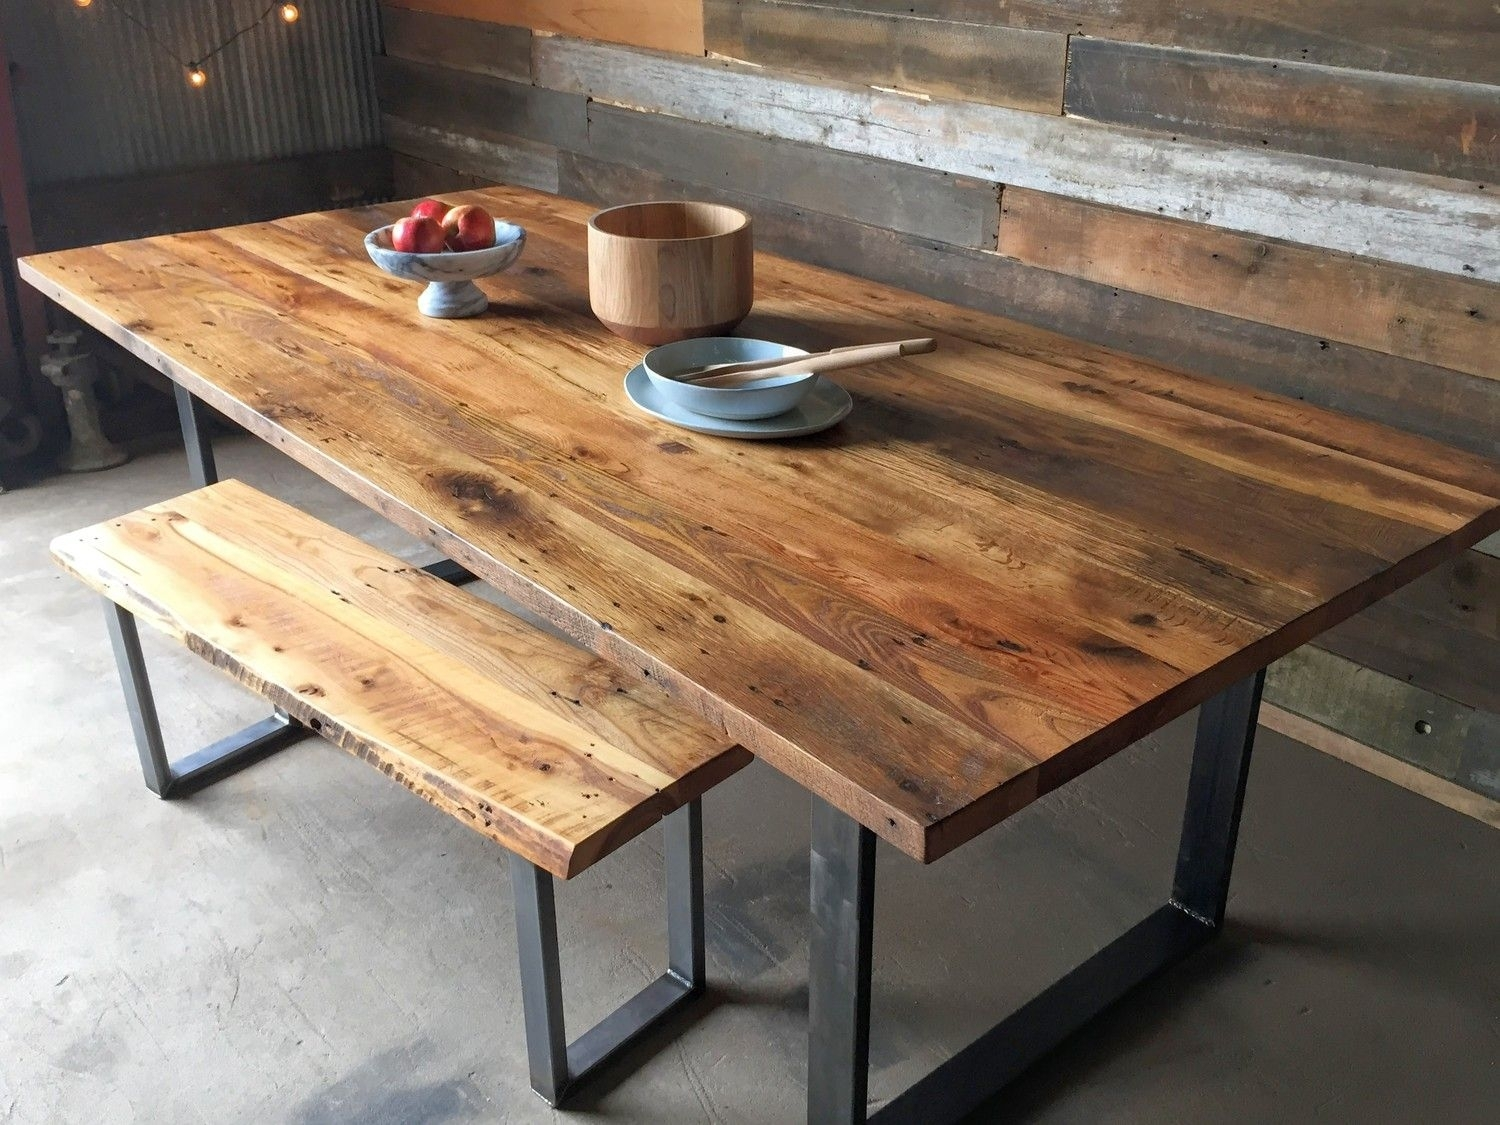 Industrial Modern Dining Table / U Shaped Metal Legs | Decor Throughout Latest Iron And Wood Dining Tables (View 3 of 20)